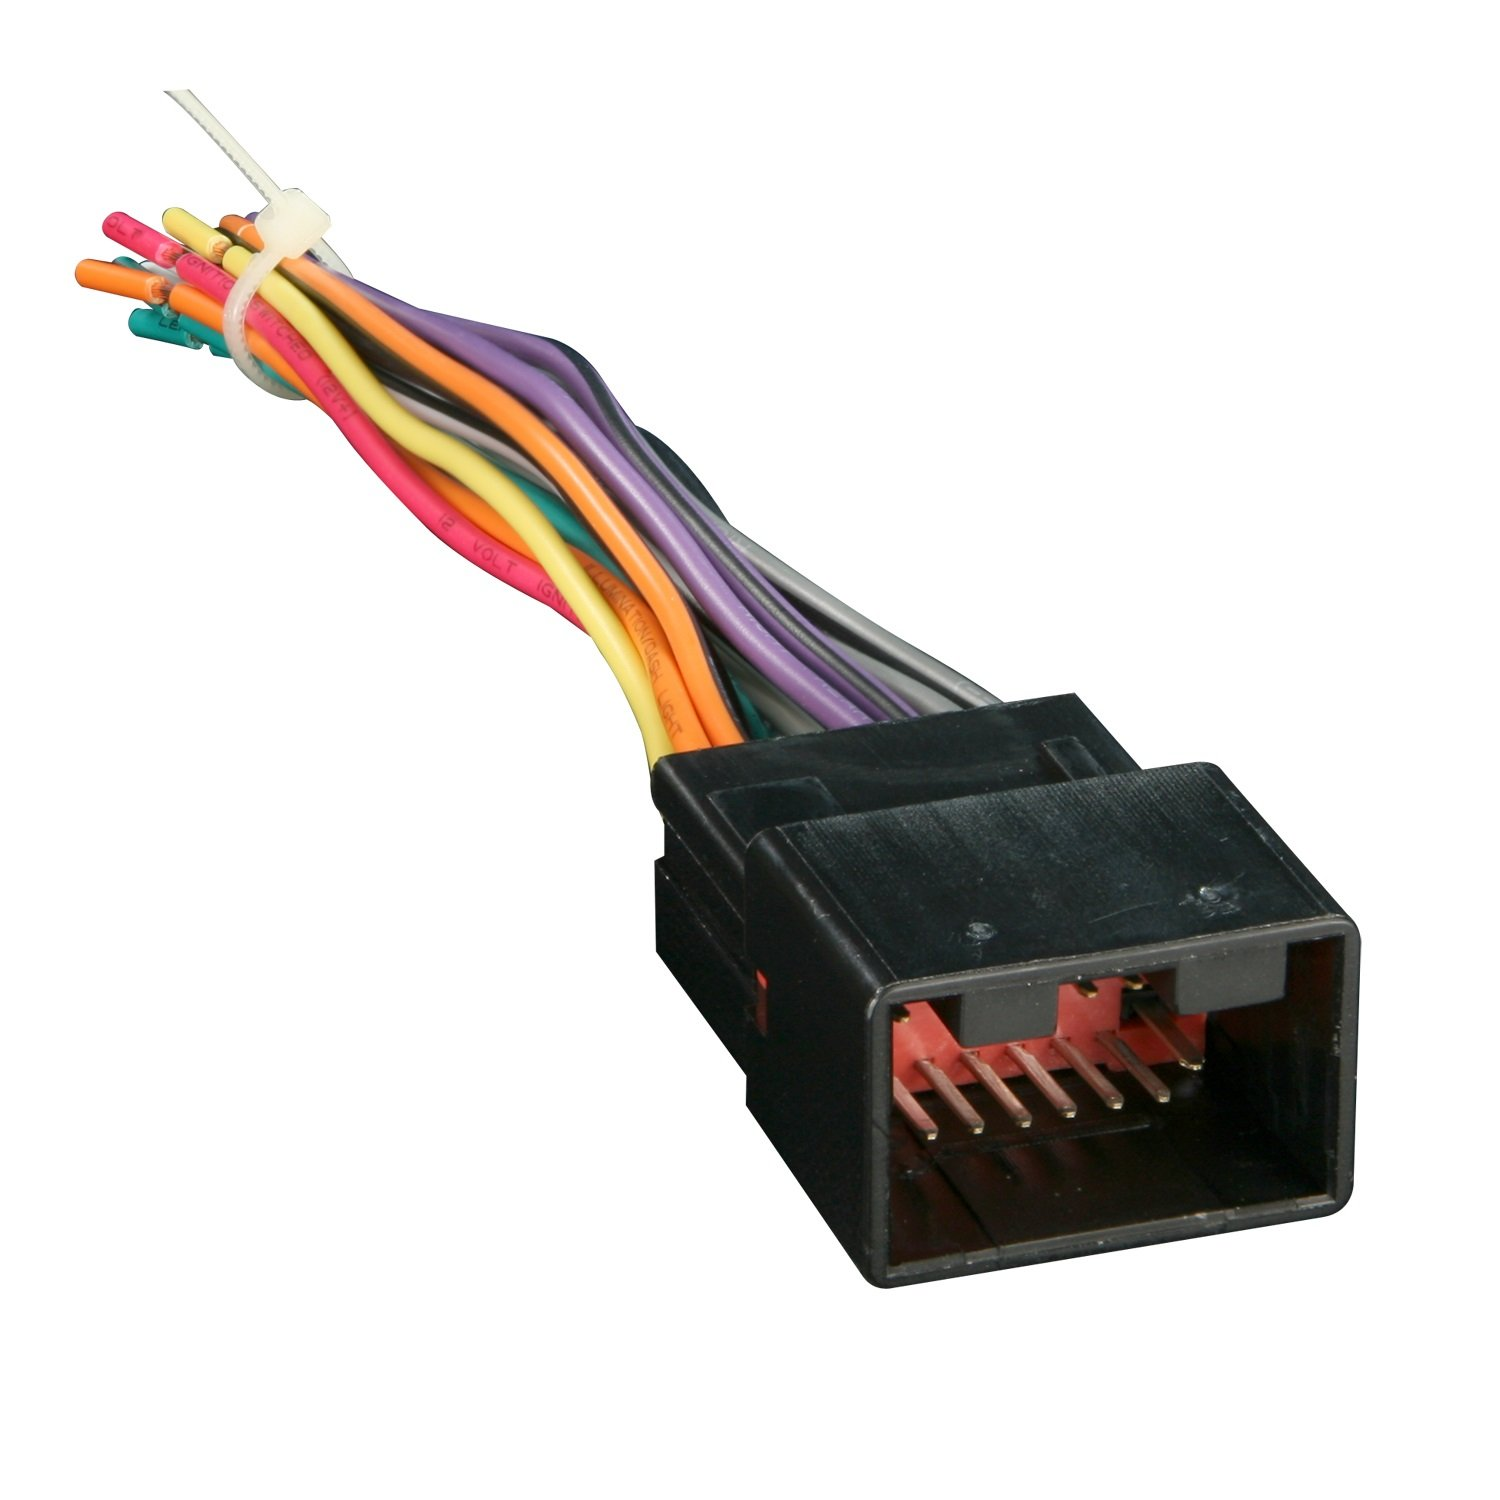 61X4UocRDeL._SL1500_ amazon com wiring harnesses electrical automotive 7.3 IDI Engine Wiring Diagram at bayanpartner.co